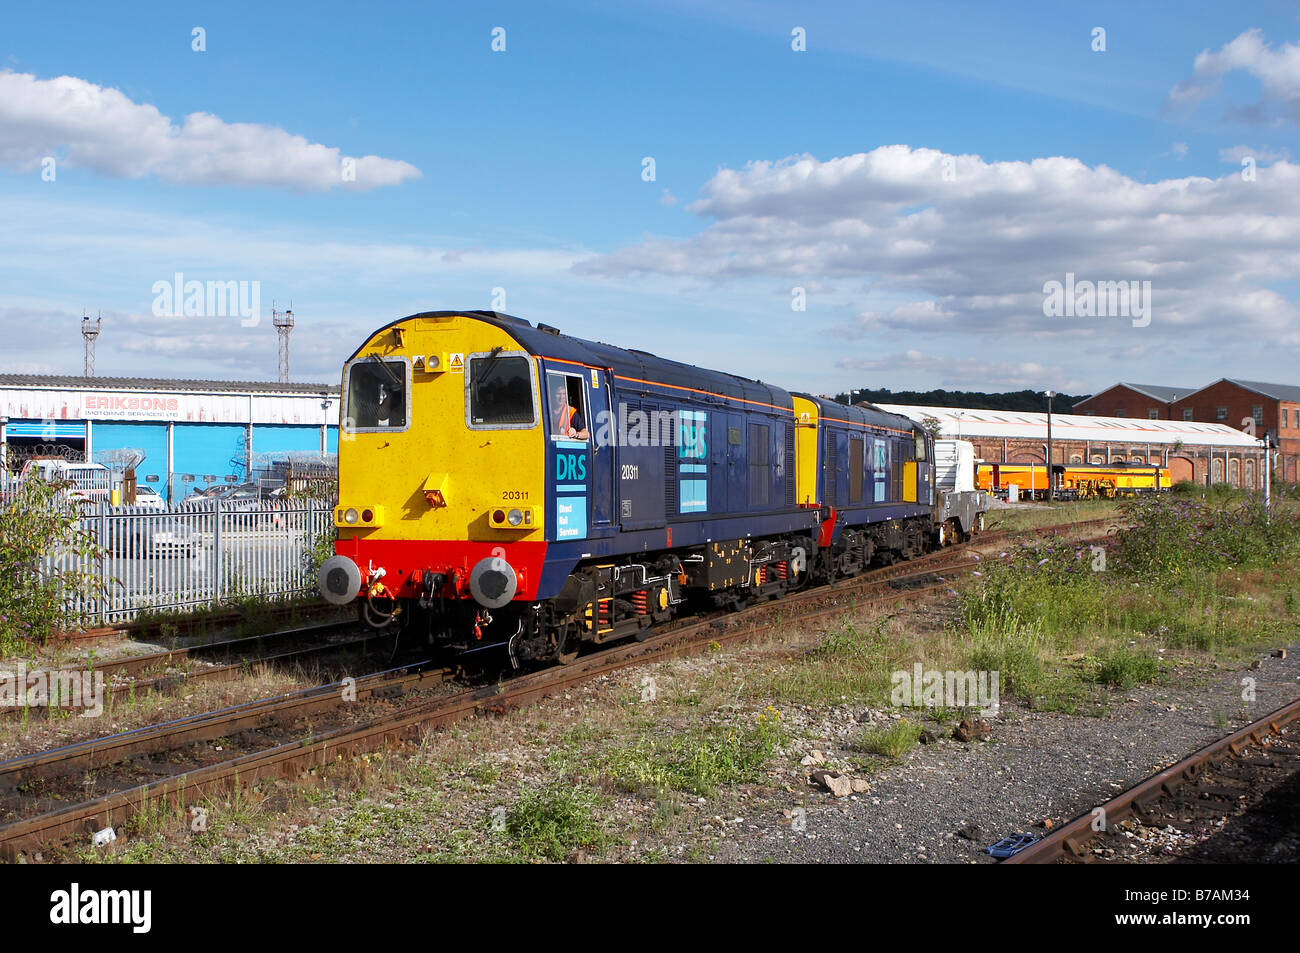 Two DRS class 20's stabled with a train of nuclear waste at Worcester Shrub Hill. - Stock Image